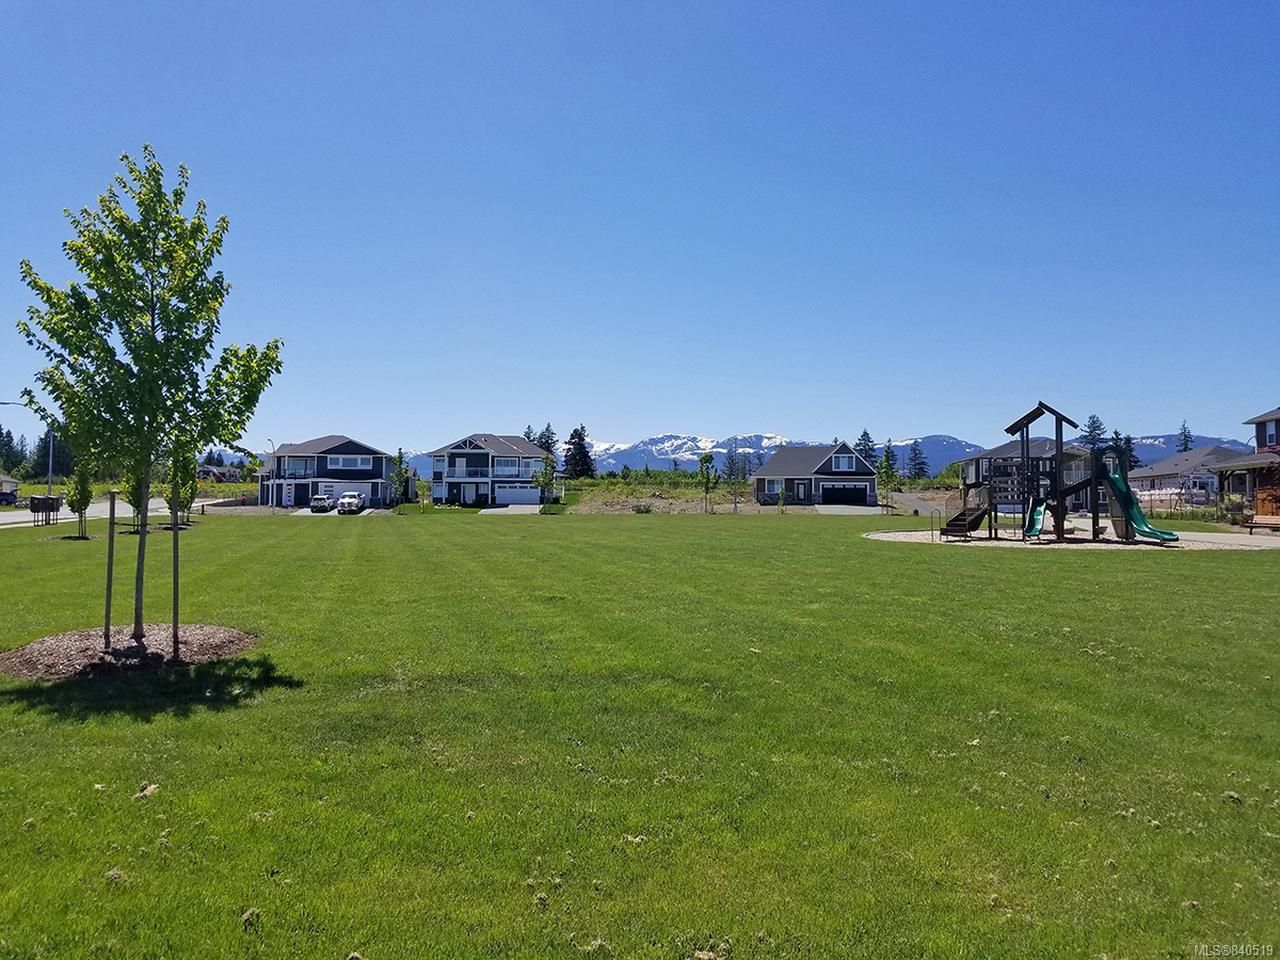 Photo 13: Photos: 3332 Harbourview Blvd in COURTENAY: CV Courtenay City House for sale (Comox Valley)  : MLS®# 840519